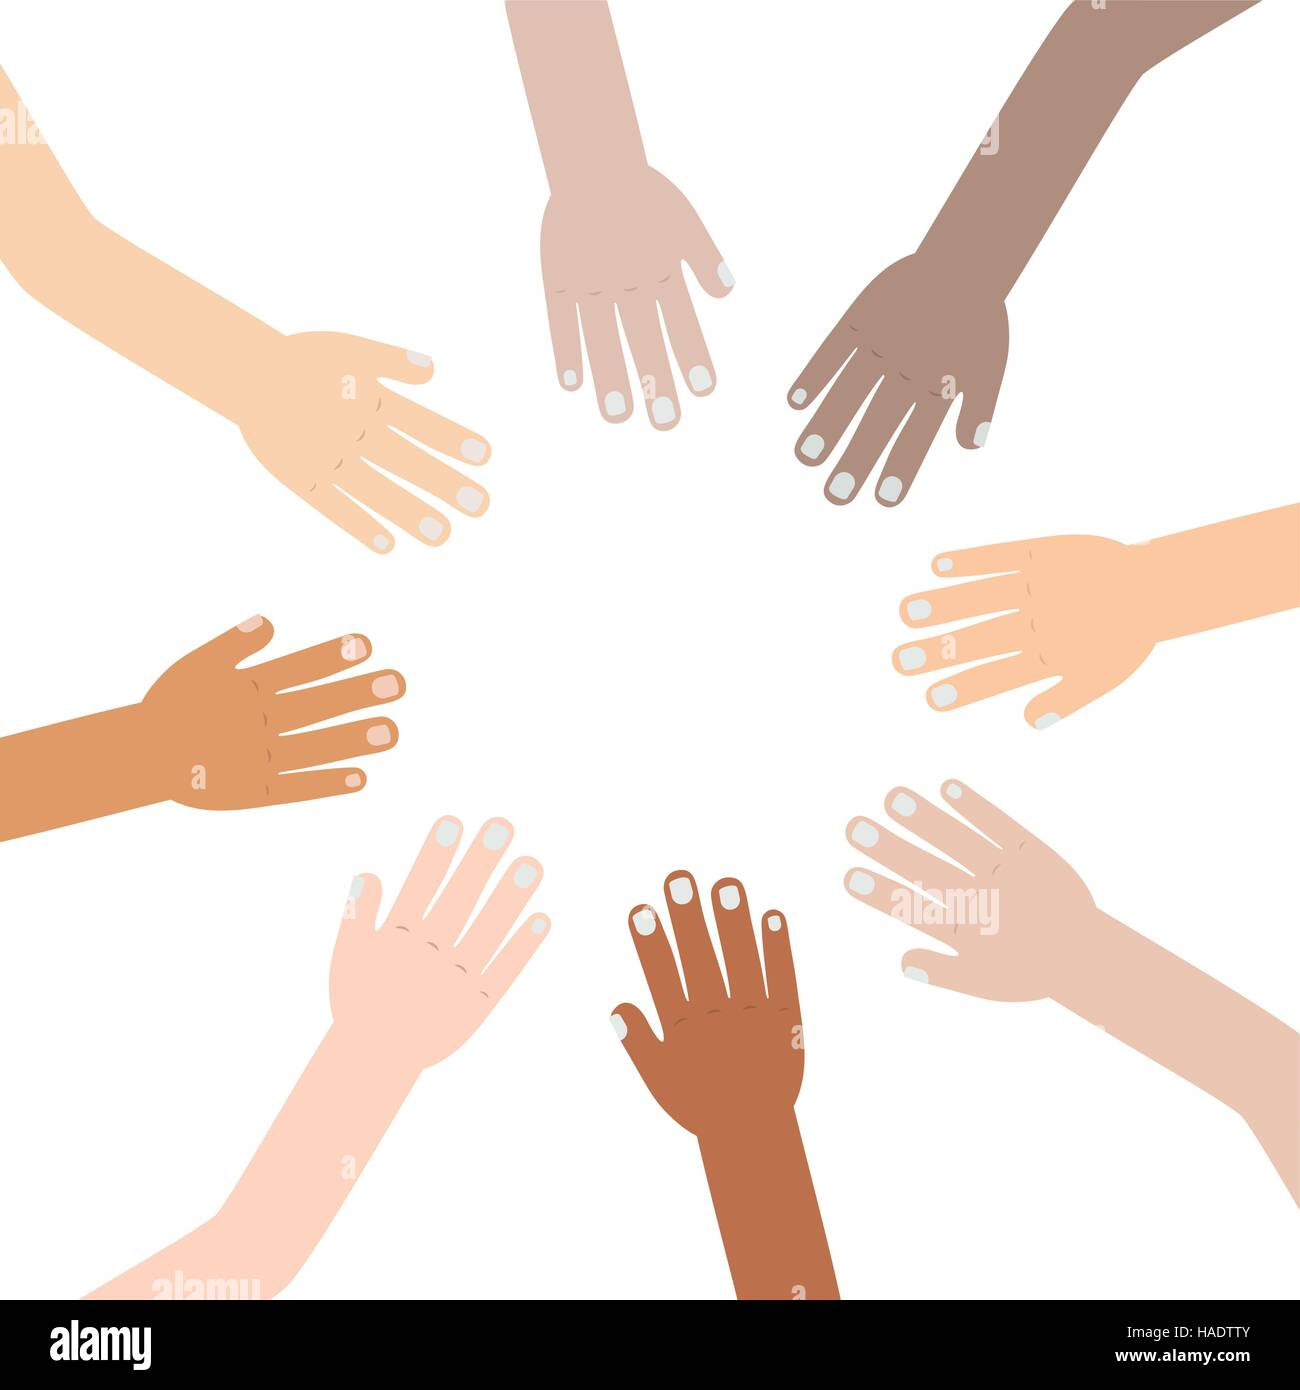 hand raised of different races united vector illustration - Stock Image